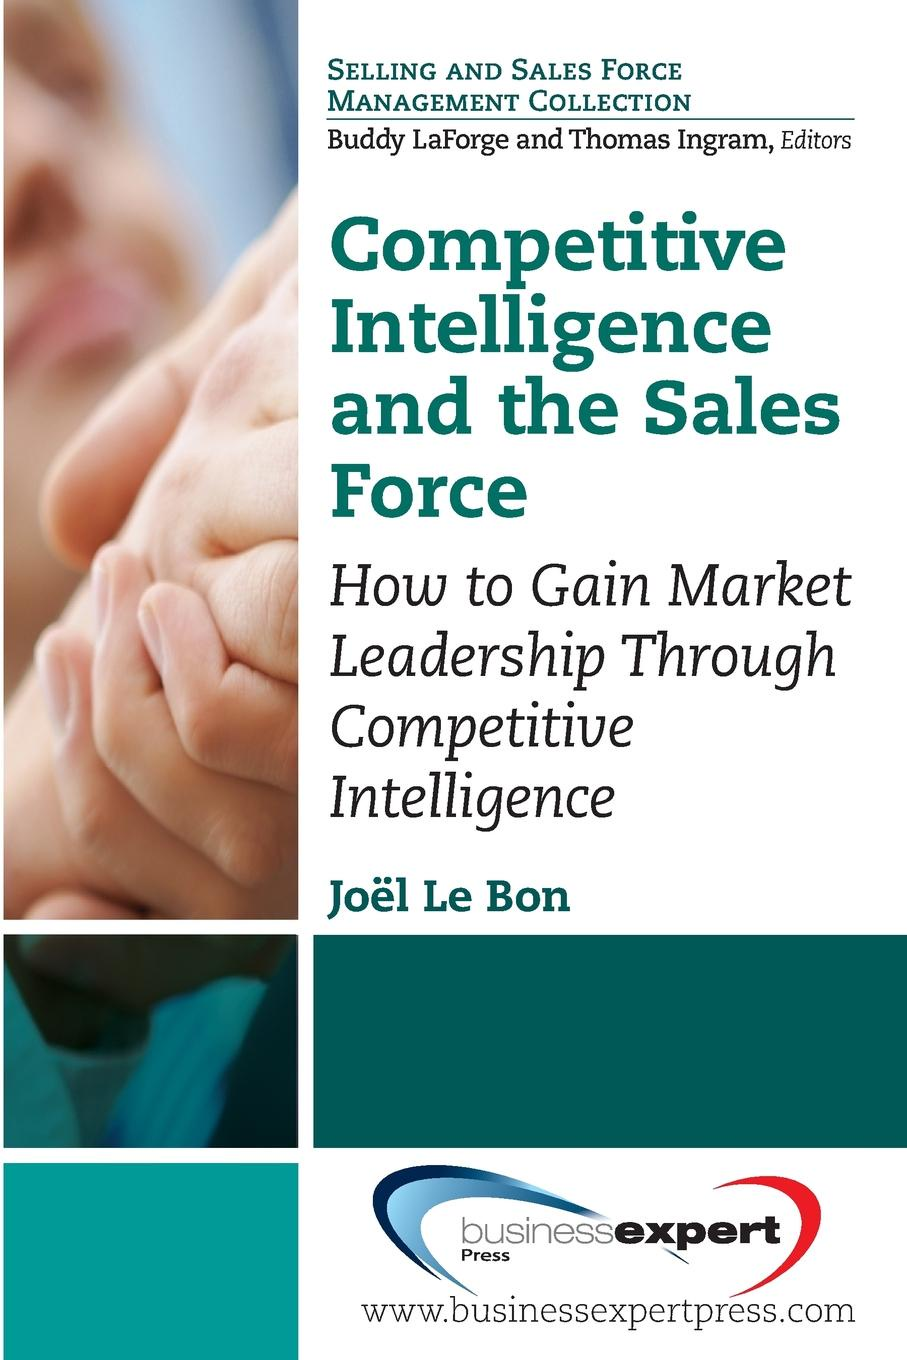 Joel Le Bon Competitive Intelligence and the Sales Force. How to Gain Market Leadership Through Competitive Intelligence stephen briese the commitments of traders bible how to profit from insider market intelligence